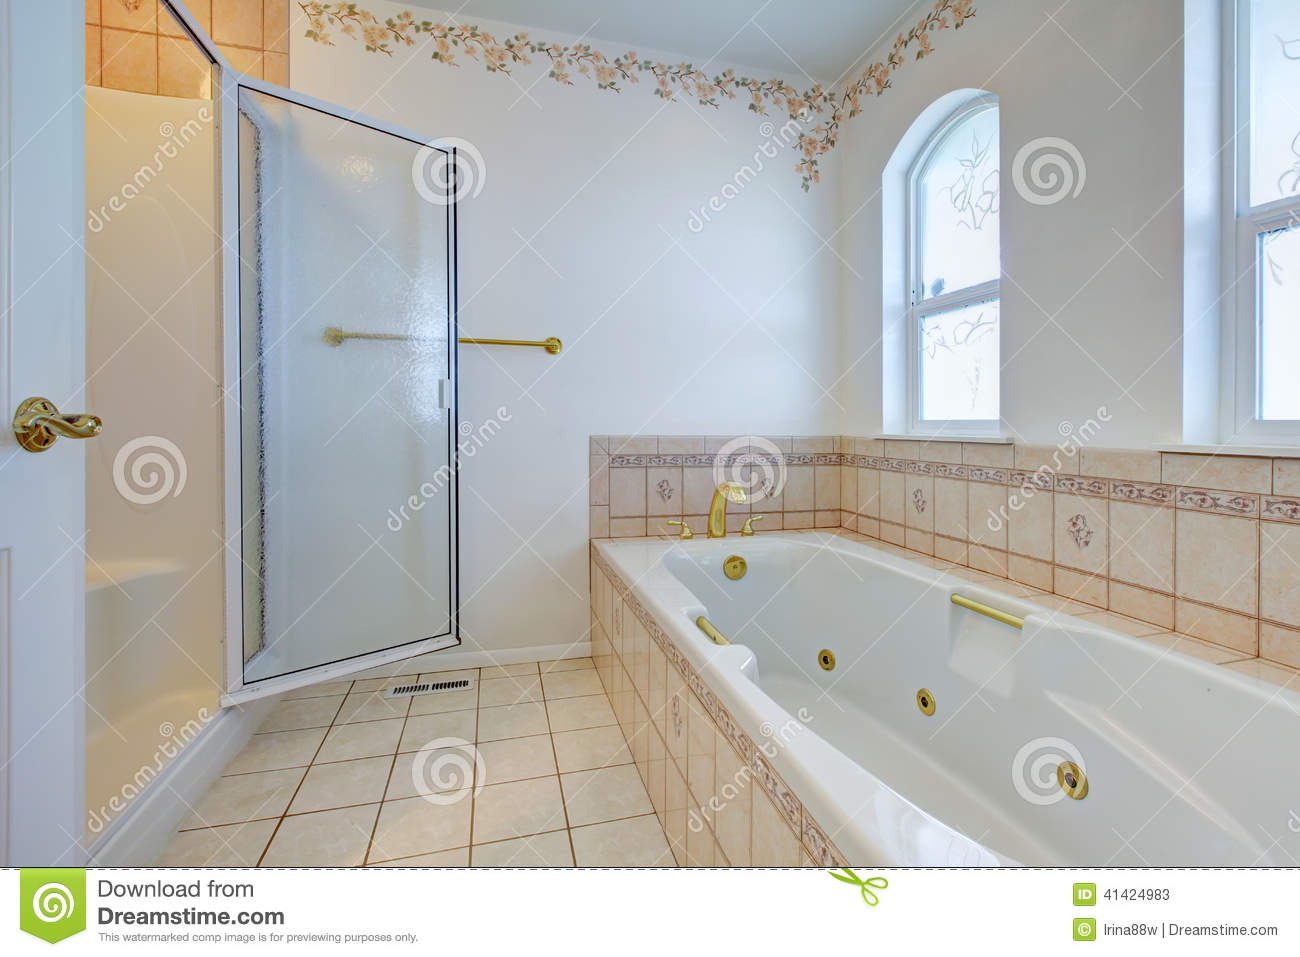 Refreshing bathroom interior with tile wall trim stock image refreshing bathroom interior with tile wall trim dailygadgetfo Gallery